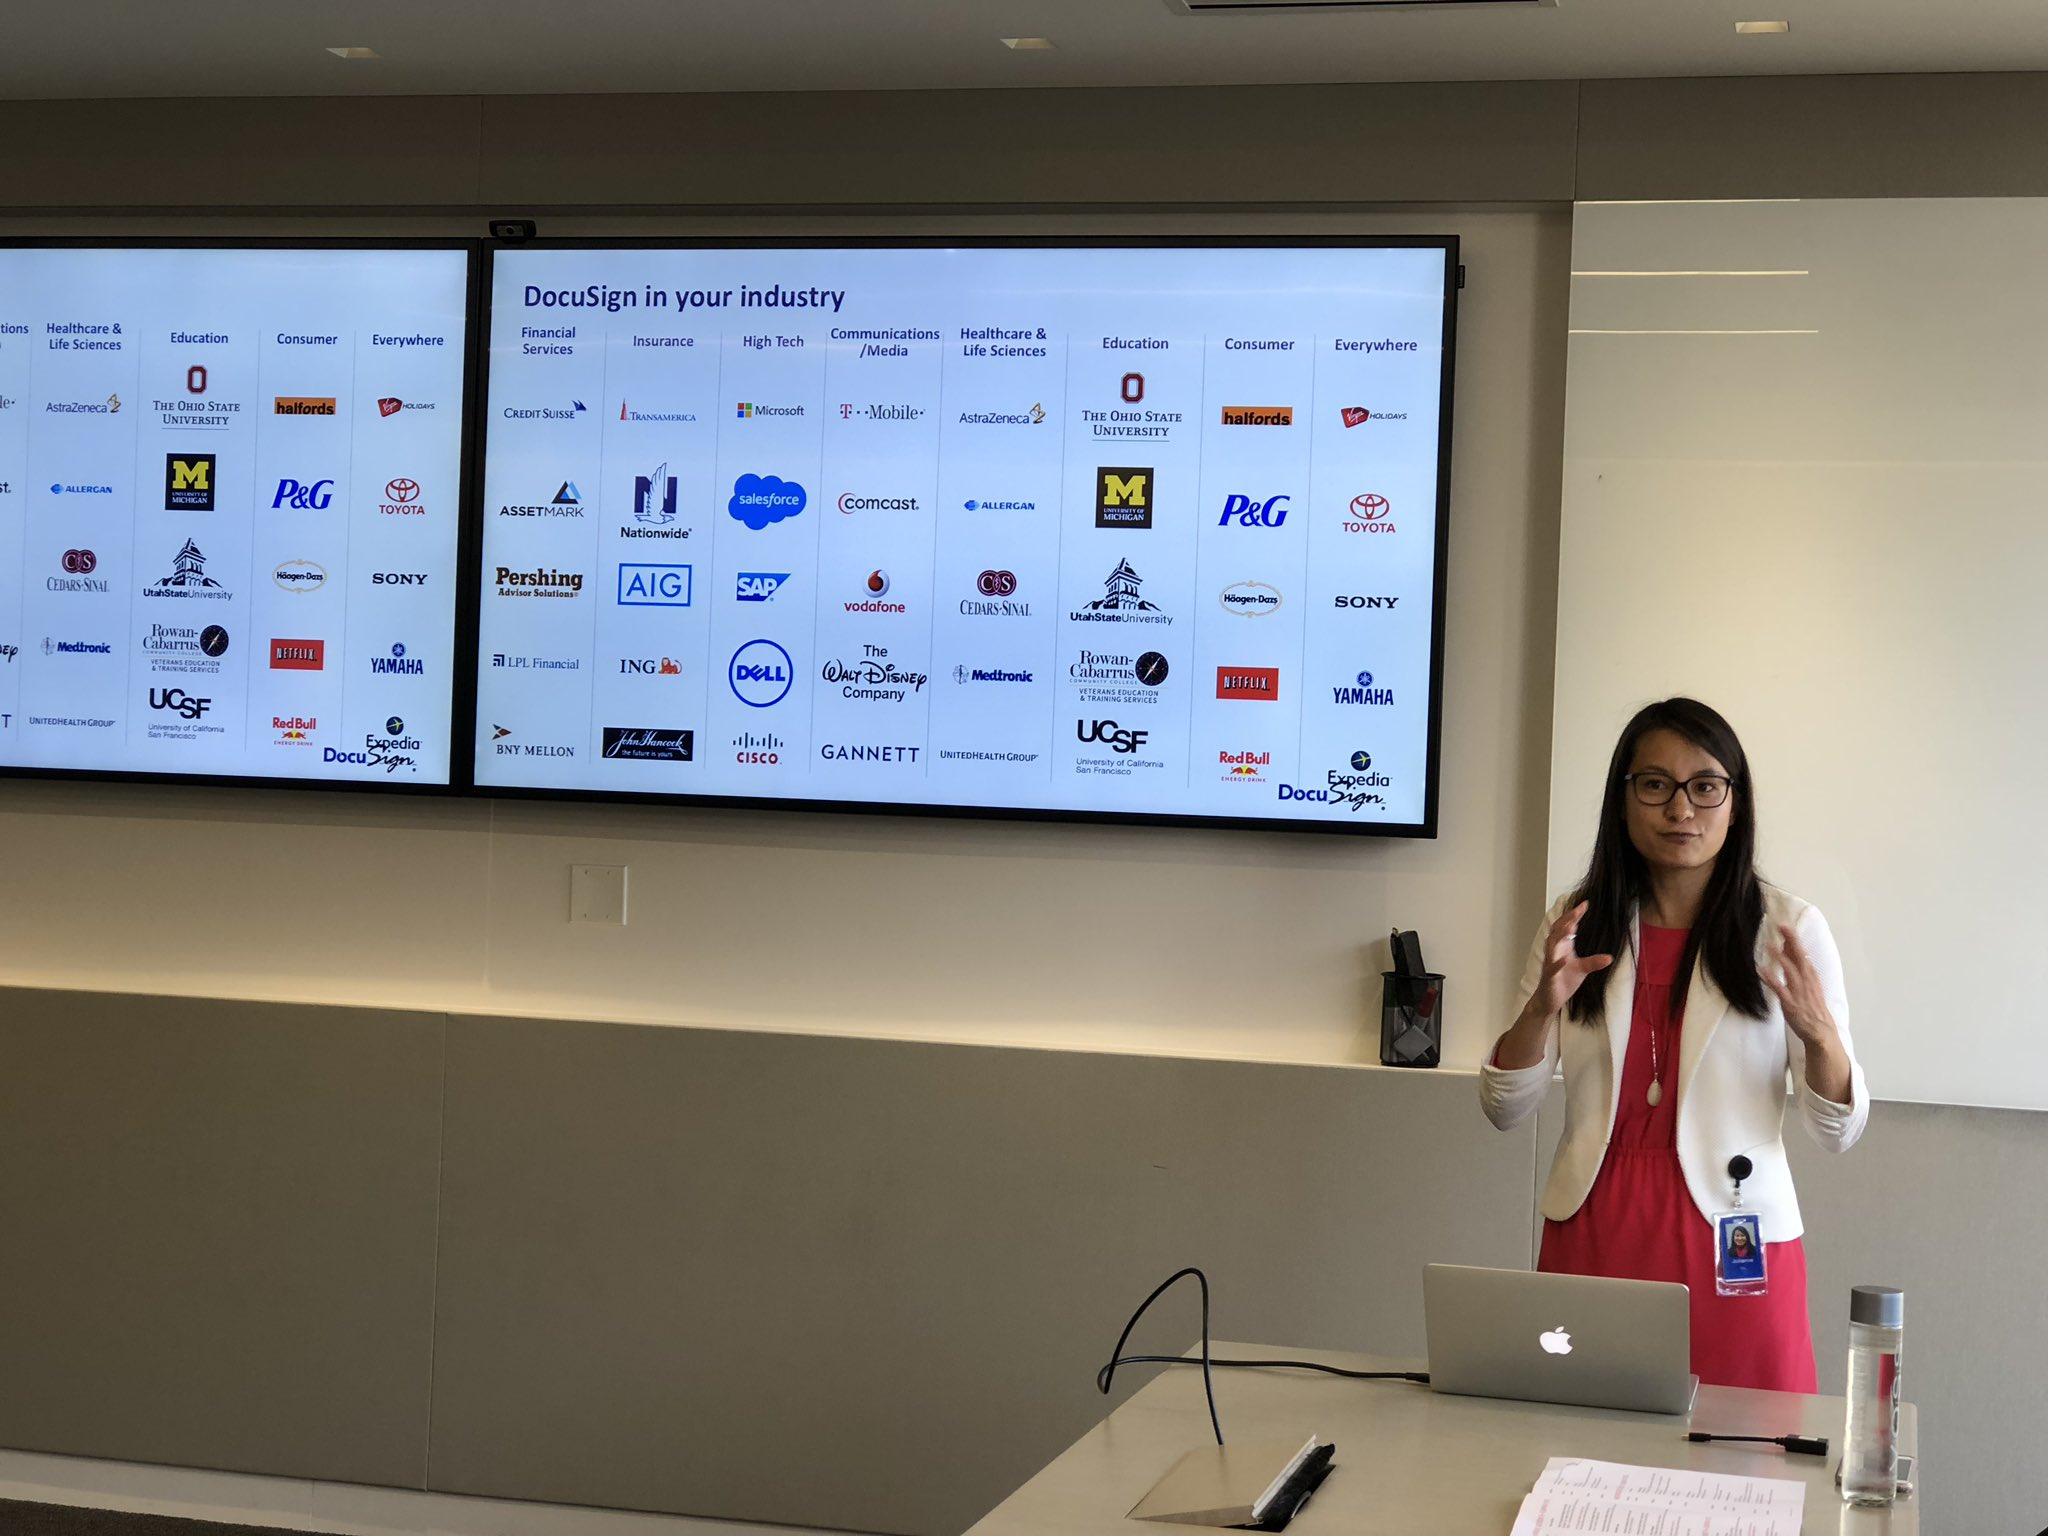 DocuSign staff represent the coverage of industry with the product